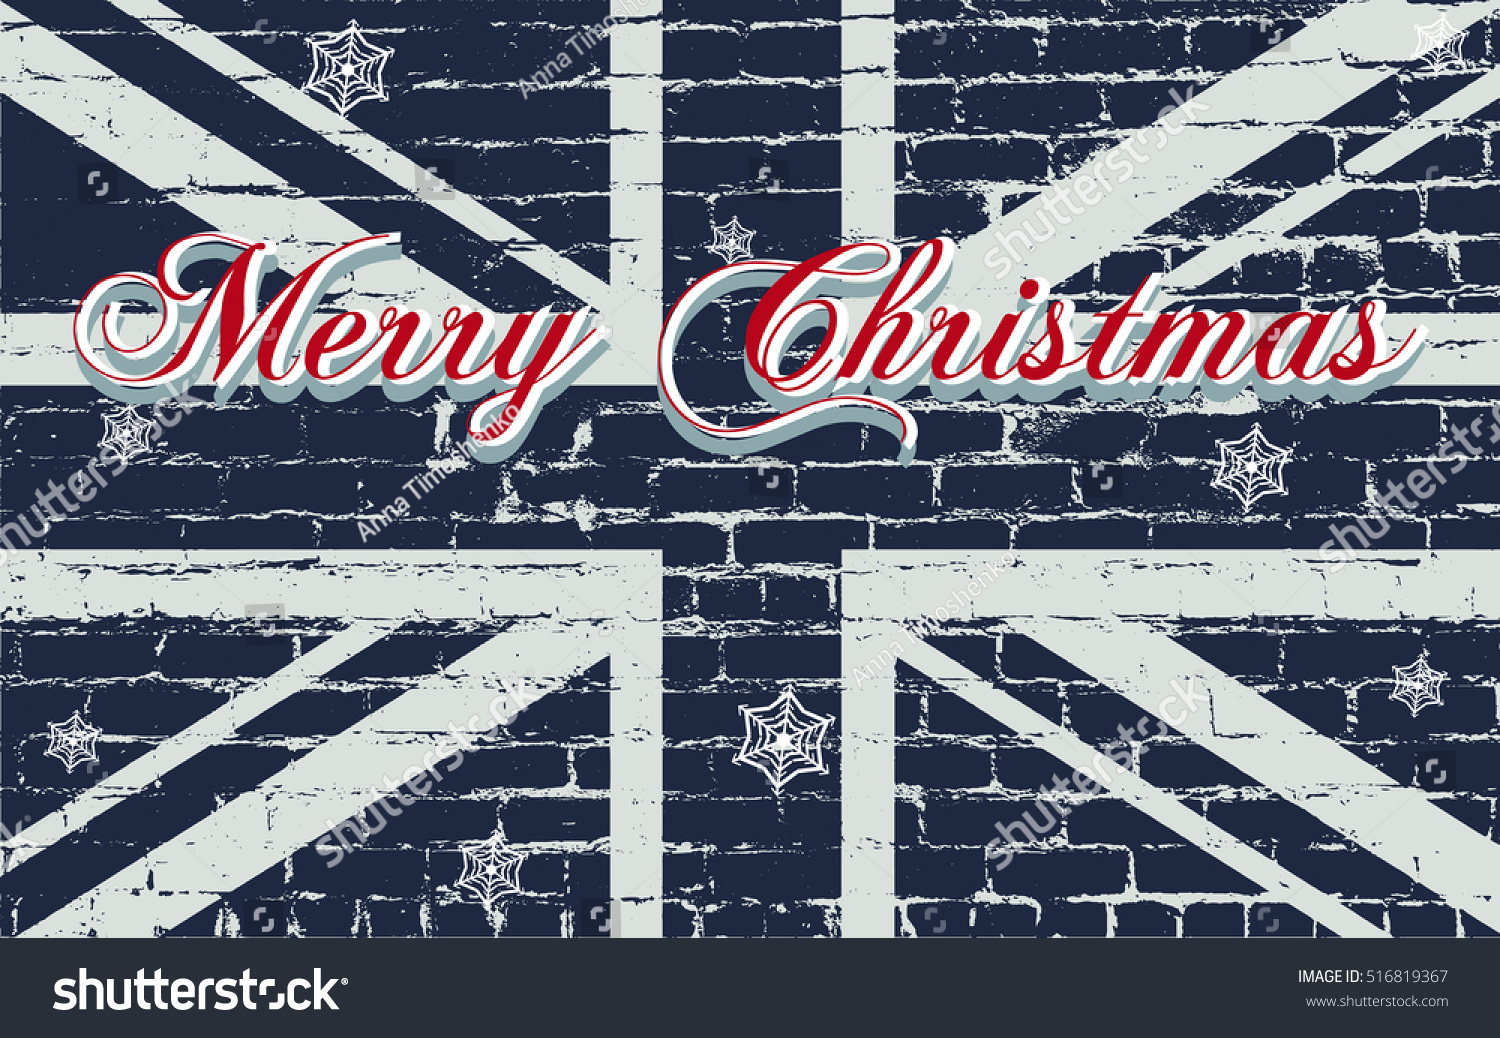 Merry Christmas Greeting Card Lettering Snowflakes Stock Vector